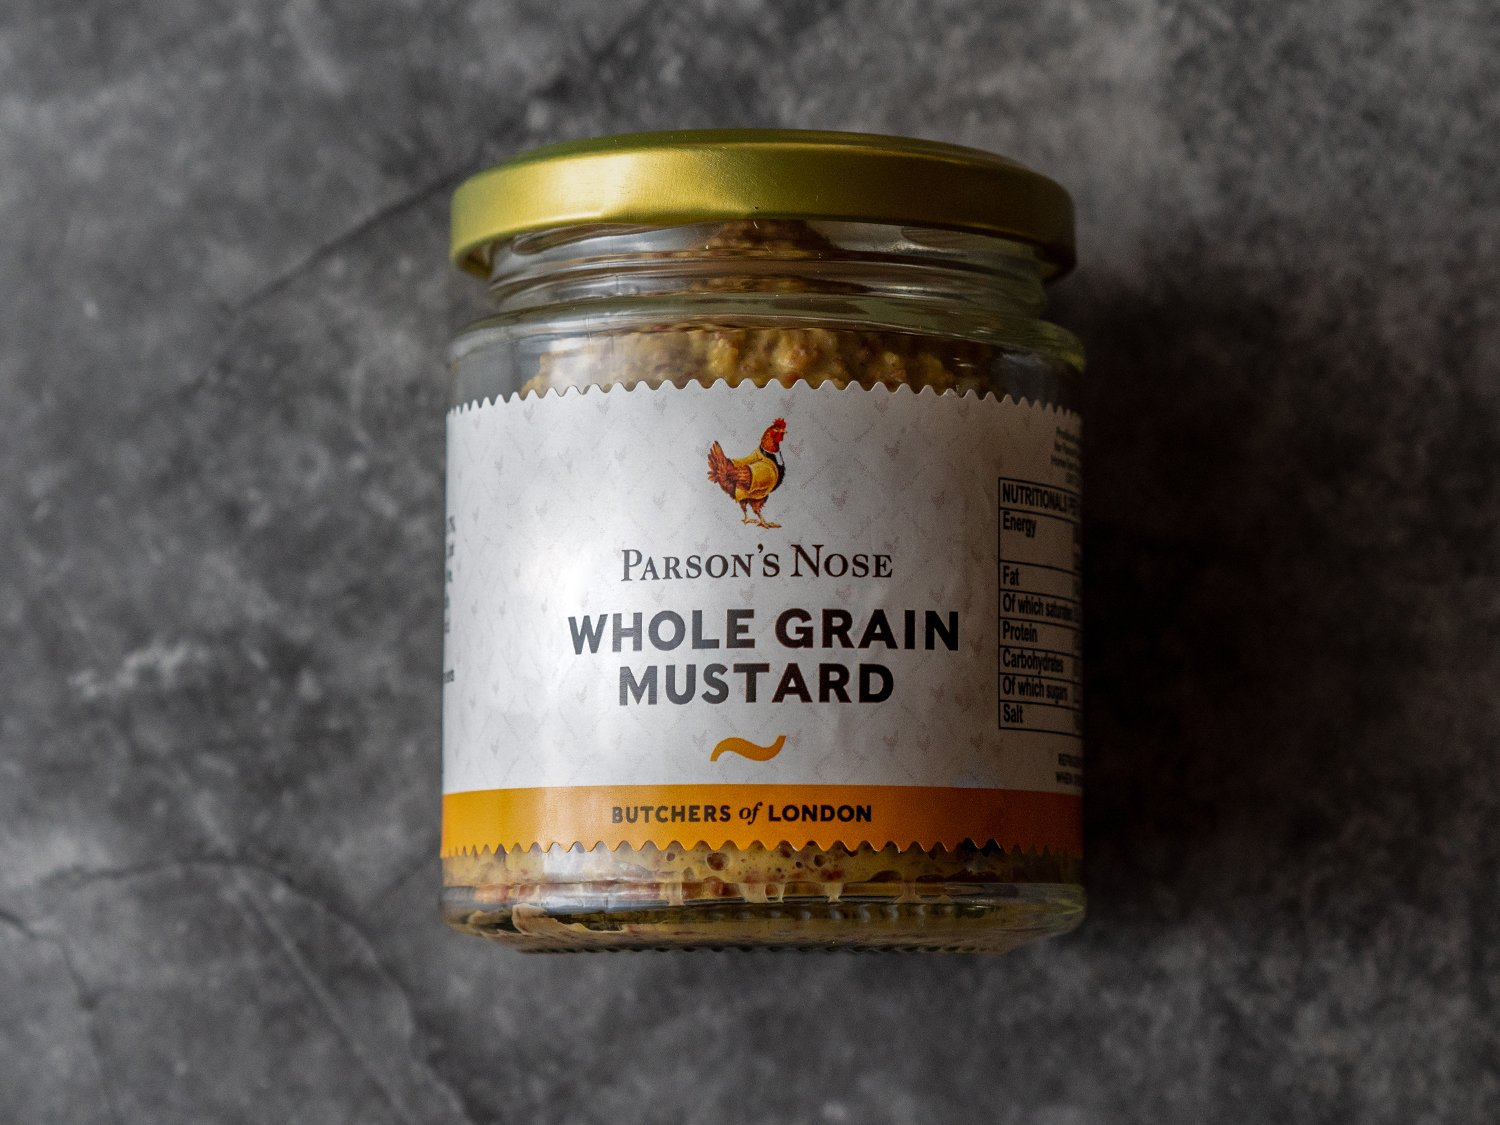 Mustard (Wholegrain) for sale - Parsons Nose